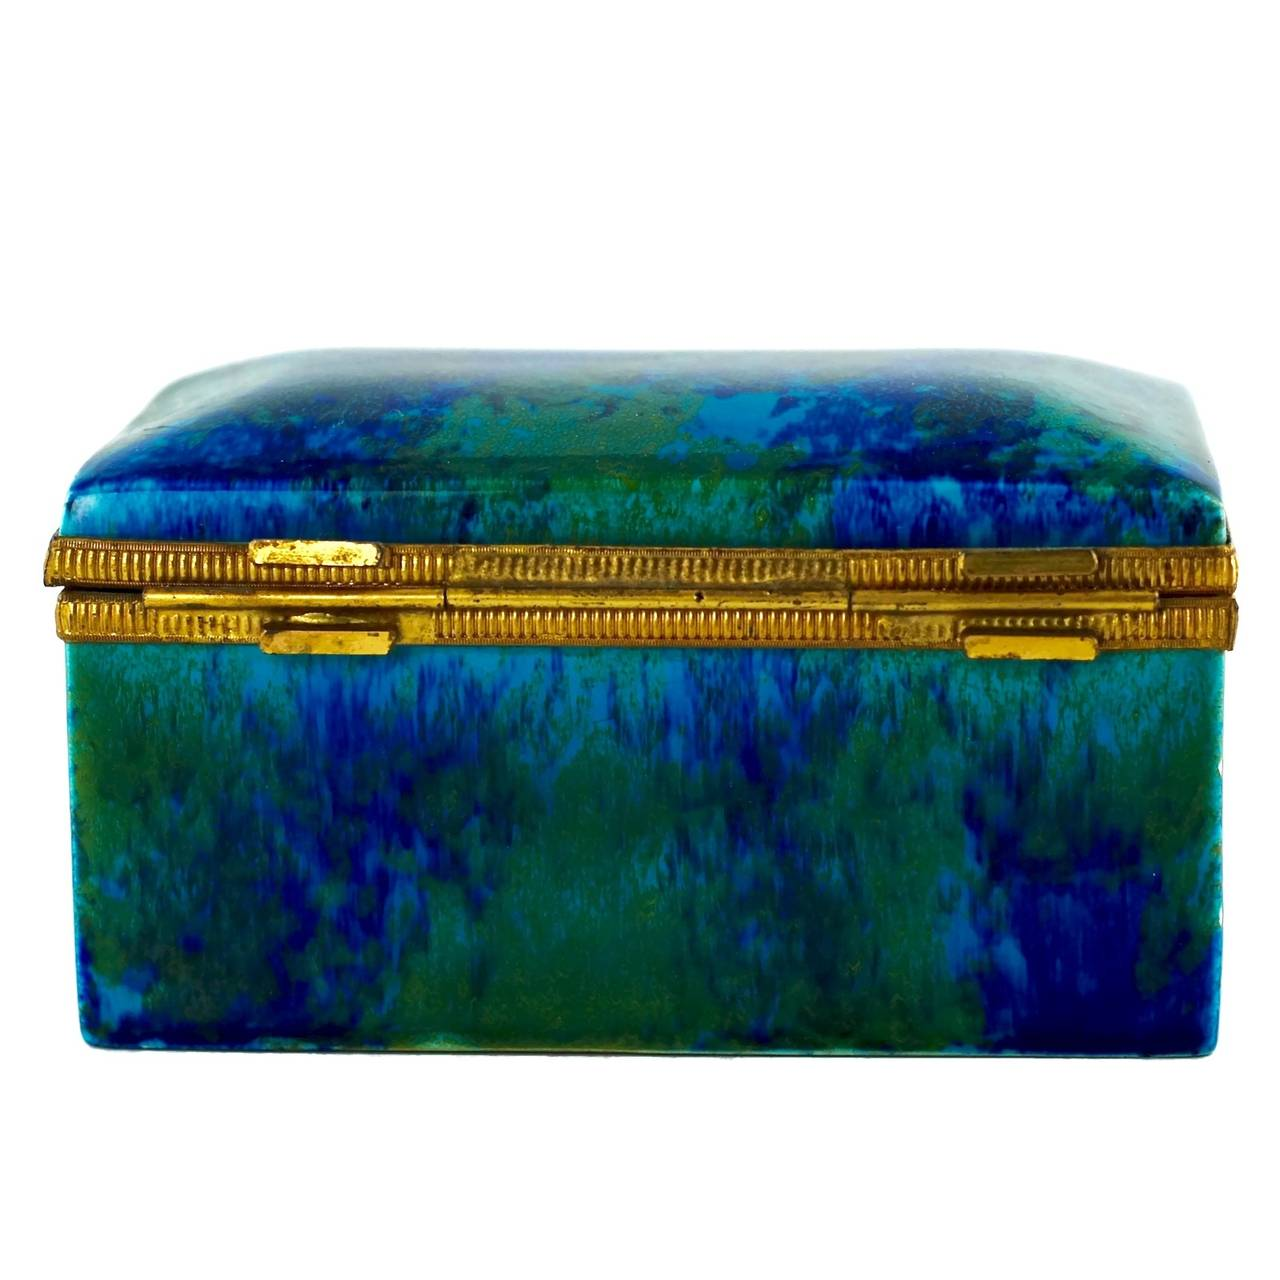 Paul Milet Sèvres Porcelain Hinged Dresser Box with Ormolu Mounts In Good Condition For Sale In Cincinnati, OH